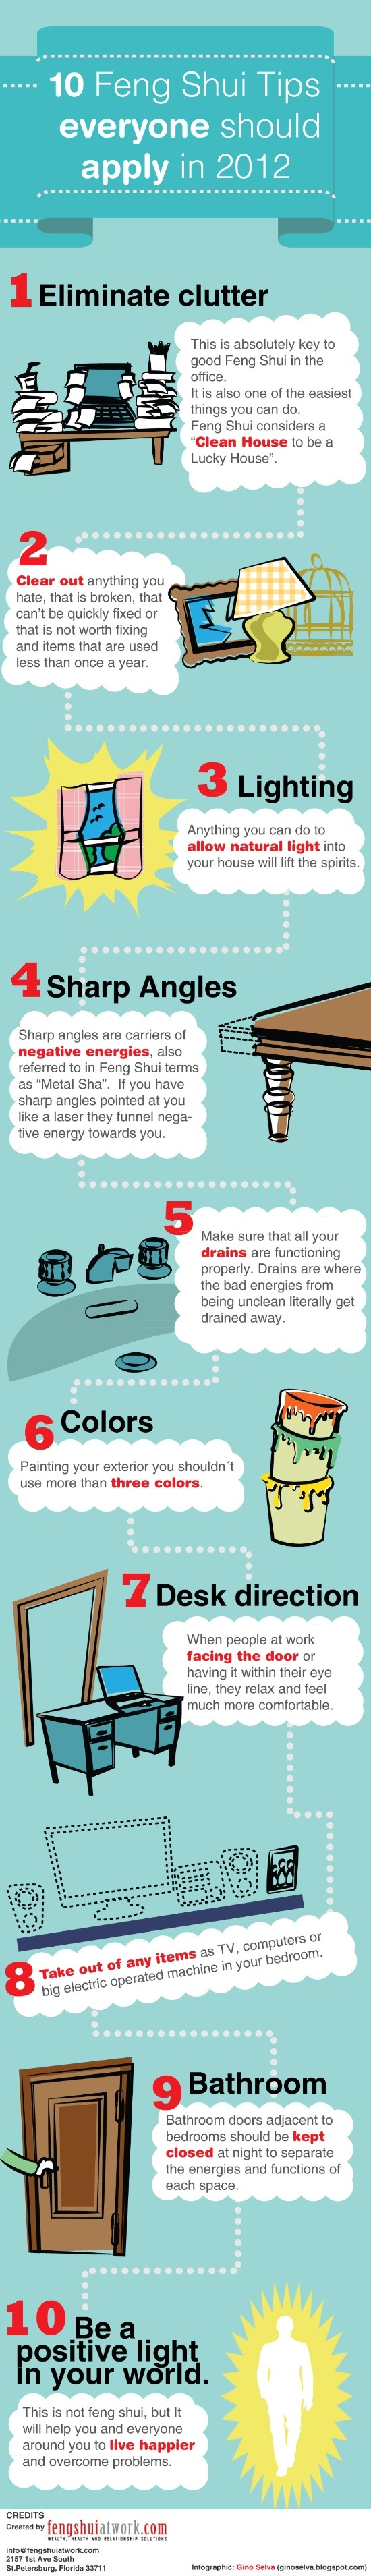 Fresh on IGM > Feng Shui Tips 2012: Let positive energy to flood your space by following these 10 simple Feng Shui tips. Its time to deal with the clutter and make spirits lift.  > http://infographicsmania.com/feng-shui-tips-2012/